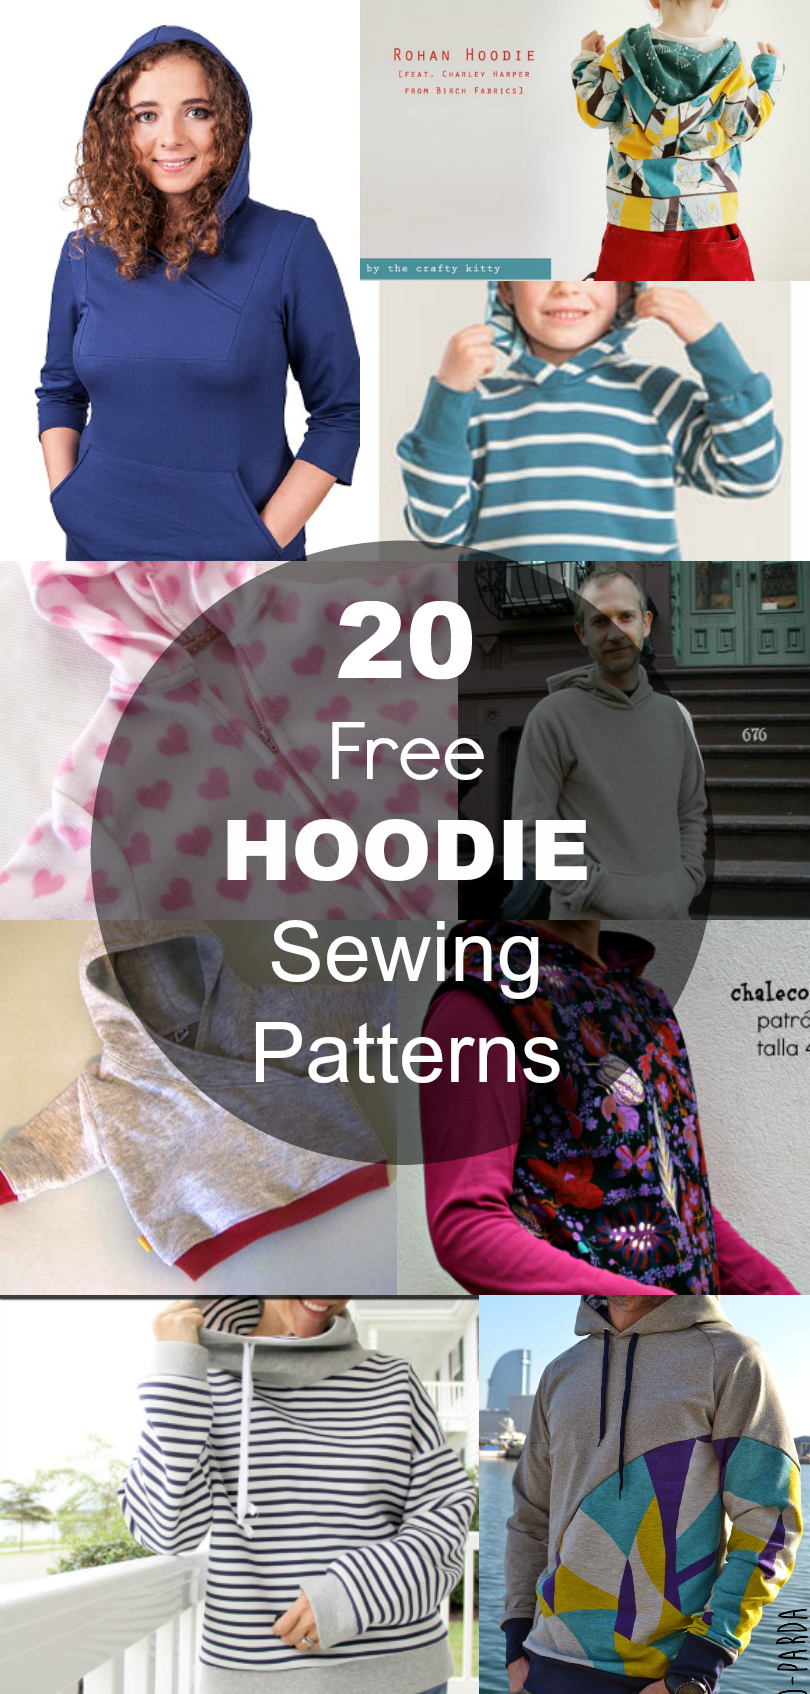 20 hoodie free printable sewing patterns on the cutting floor 20 hoodie free printable sewing patterns on the cutting floor printable pdf sewing patterns and tutorials for women on the cutting floor printable pdf jeuxipadfo Images